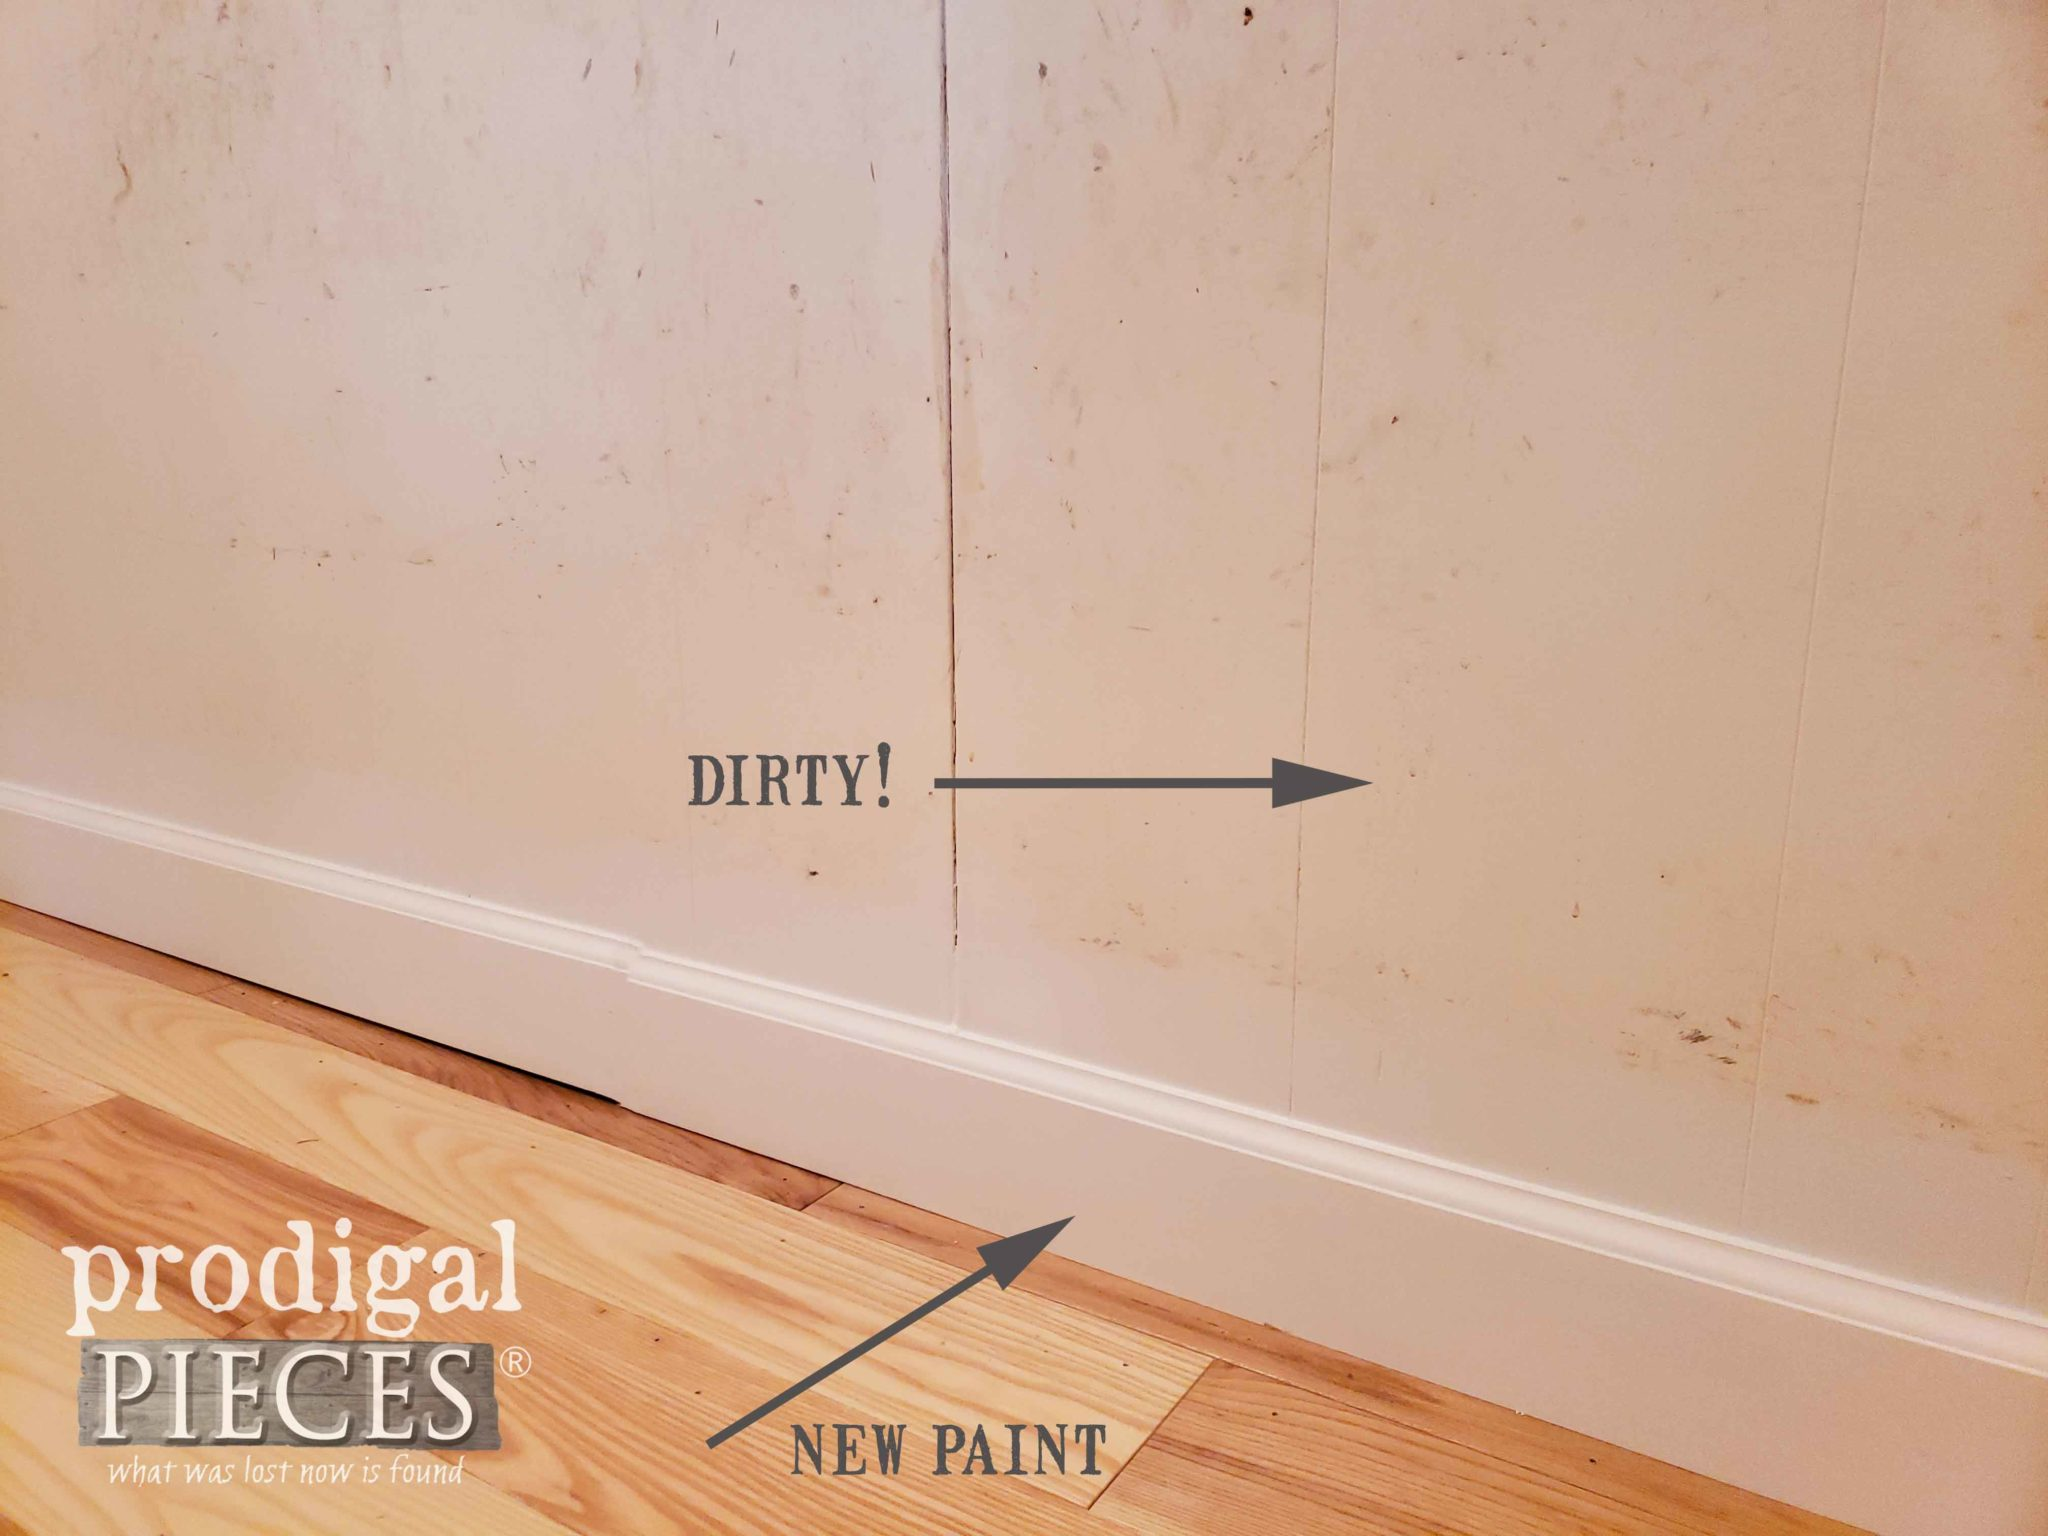 Painting Mudroom Wall with a Fresh Coat of Paint | prodigalpieces.com